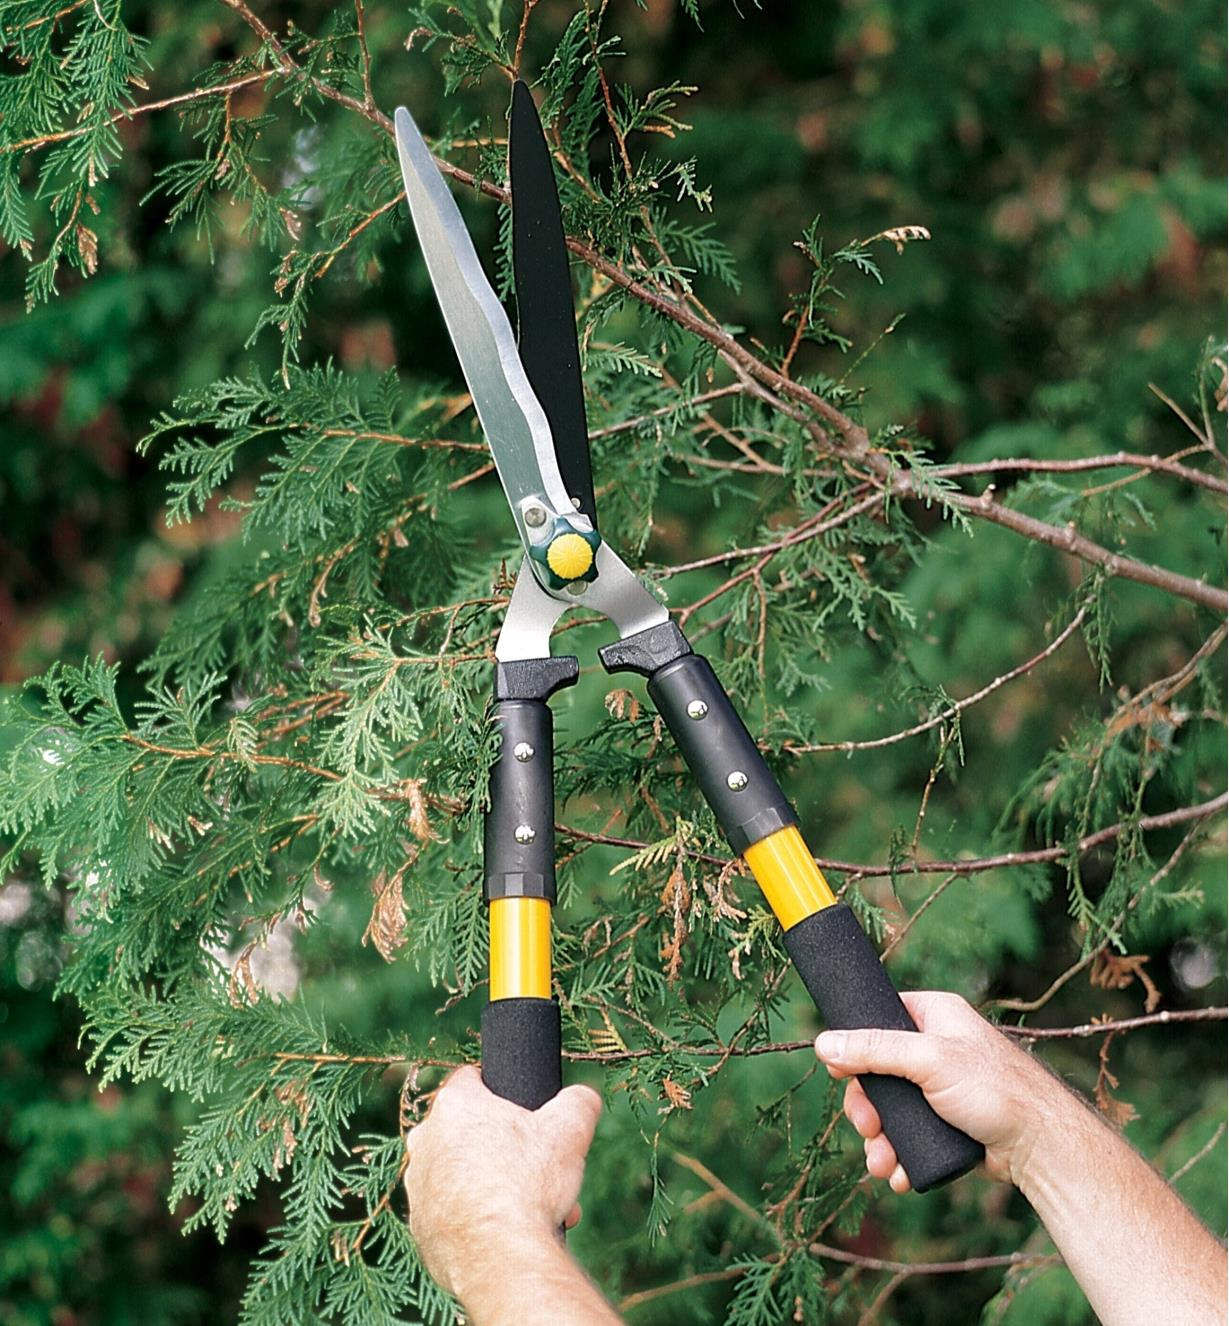 Using Standard Hedge Shears to trim a hedge